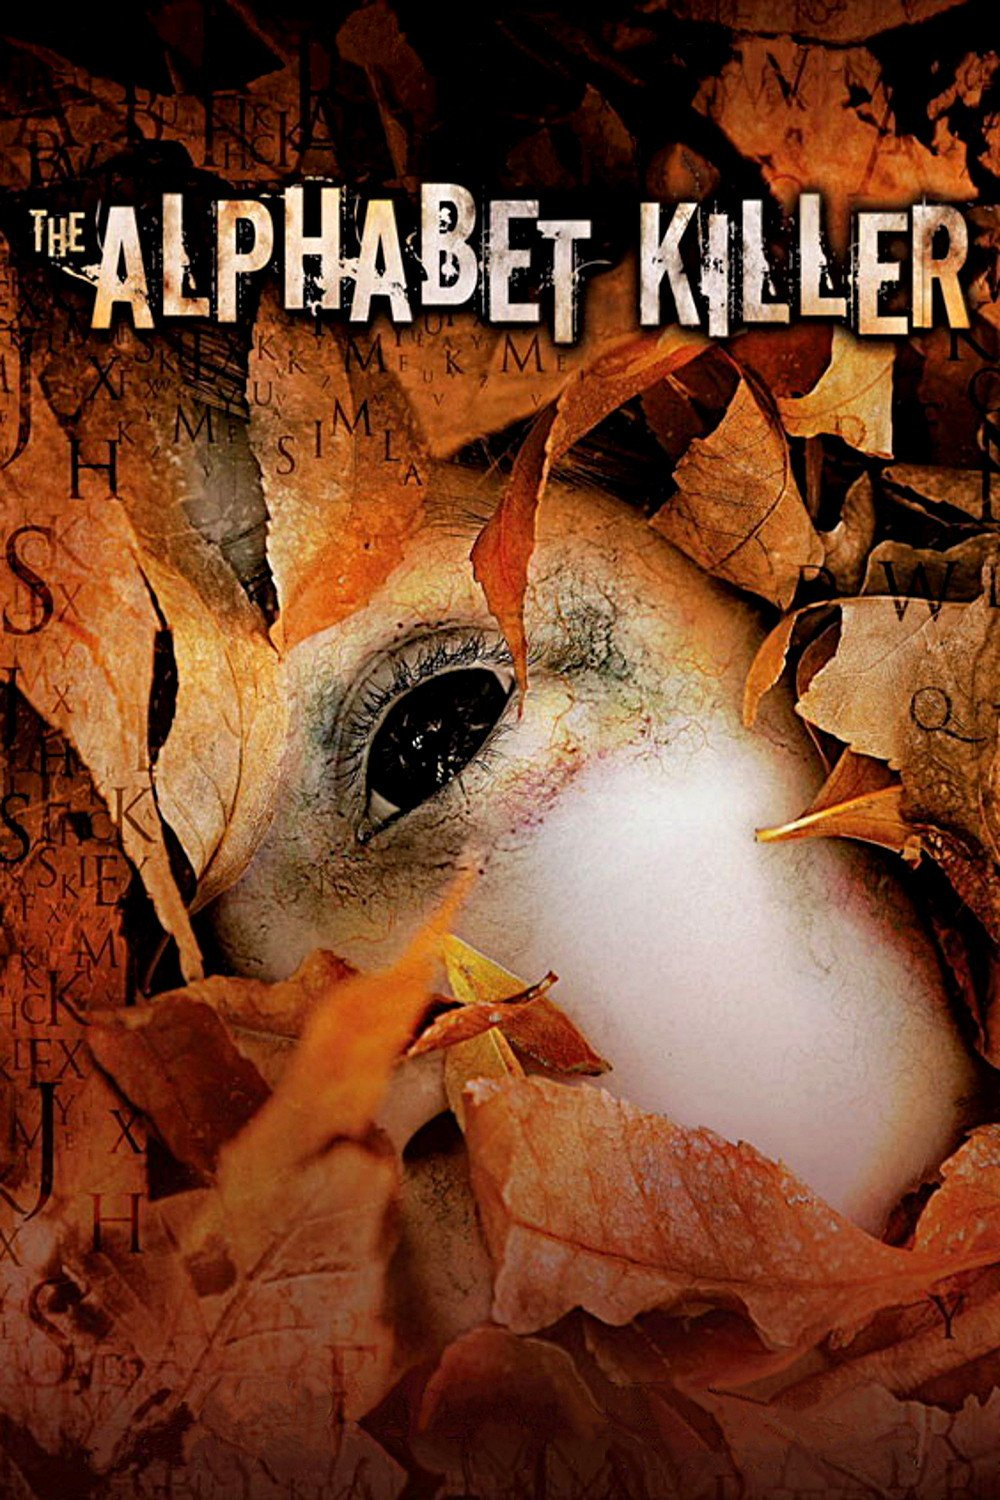 The Alphabet Killer, 2008